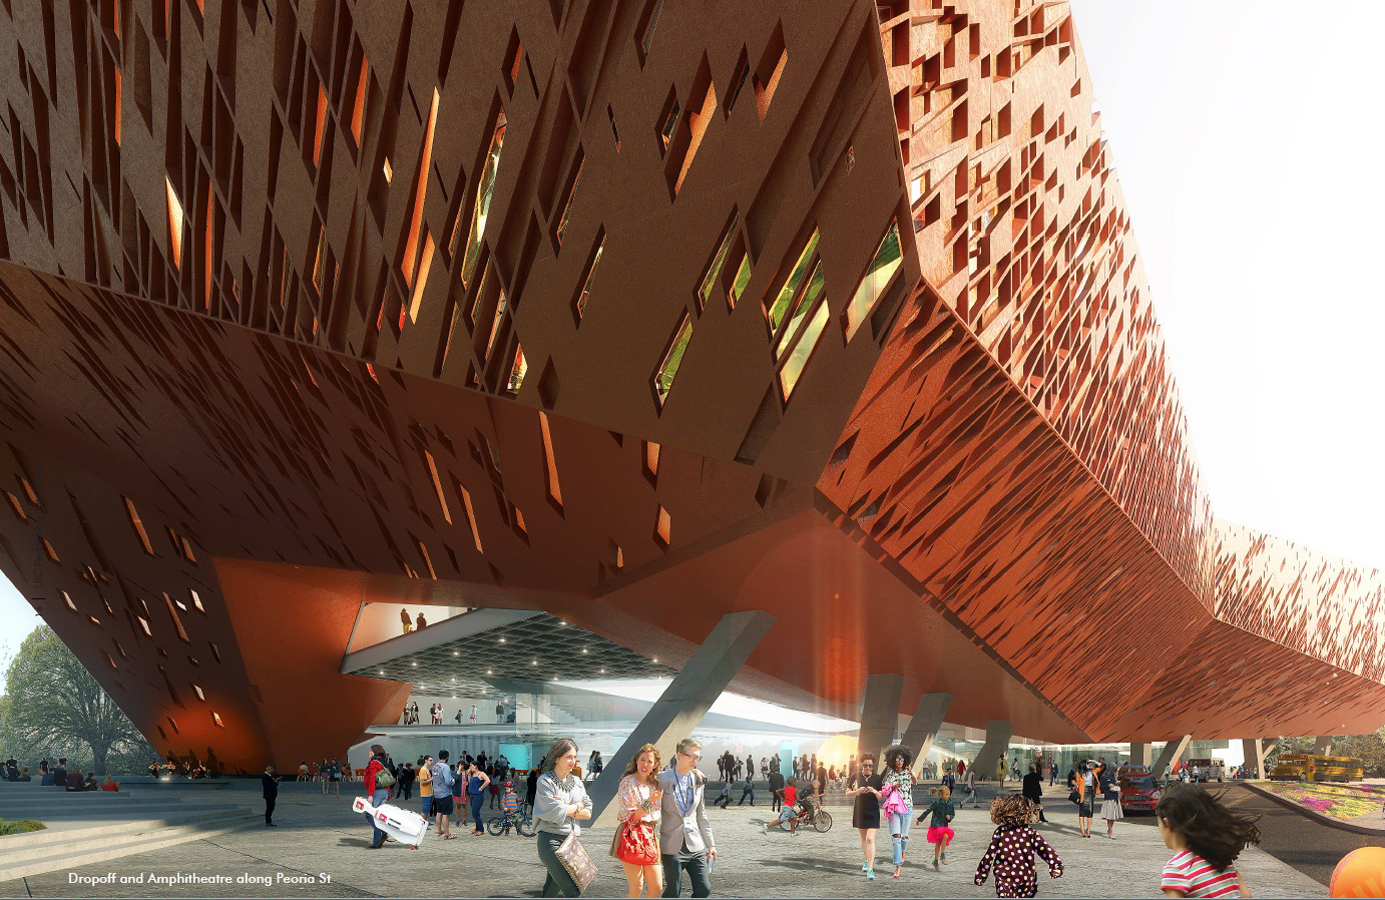 Rendering of an orange building with a perforated skin